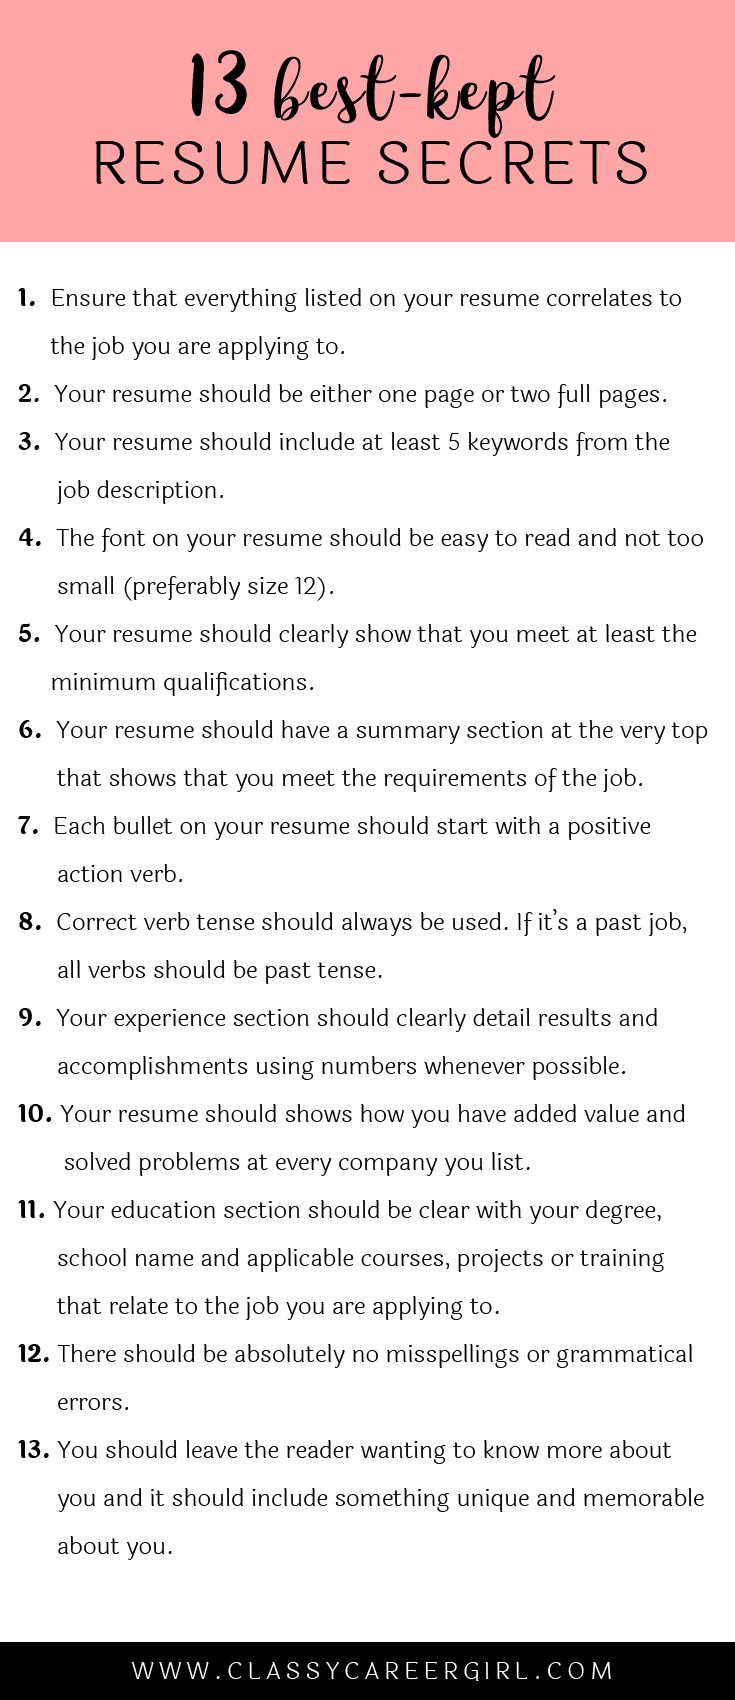 Opposenewapstandardsus  Gorgeous  Ideas About Resume On Pinterest  Cv Format Resume Cv And  With Fair Some Hiring Managers Will Toss Your Resume Out If You Dont Know These  With Attractive How To Write A General Resume Also Free Build A Resume In Addition Resume Weaknesses And Inside Sales Resume Examples As Well As Professional Engineering Resume Additionally Reference Page For Resume Template From Pinterestcom With Opposenewapstandardsus  Fair  Ideas About Resume On Pinterest  Cv Format Resume Cv And  With Attractive Some Hiring Managers Will Toss Your Resume Out If You Dont Know These  And Gorgeous How To Write A General Resume Also Free Build A Resume In Addition Resume Weaknesses From Pinterestcom